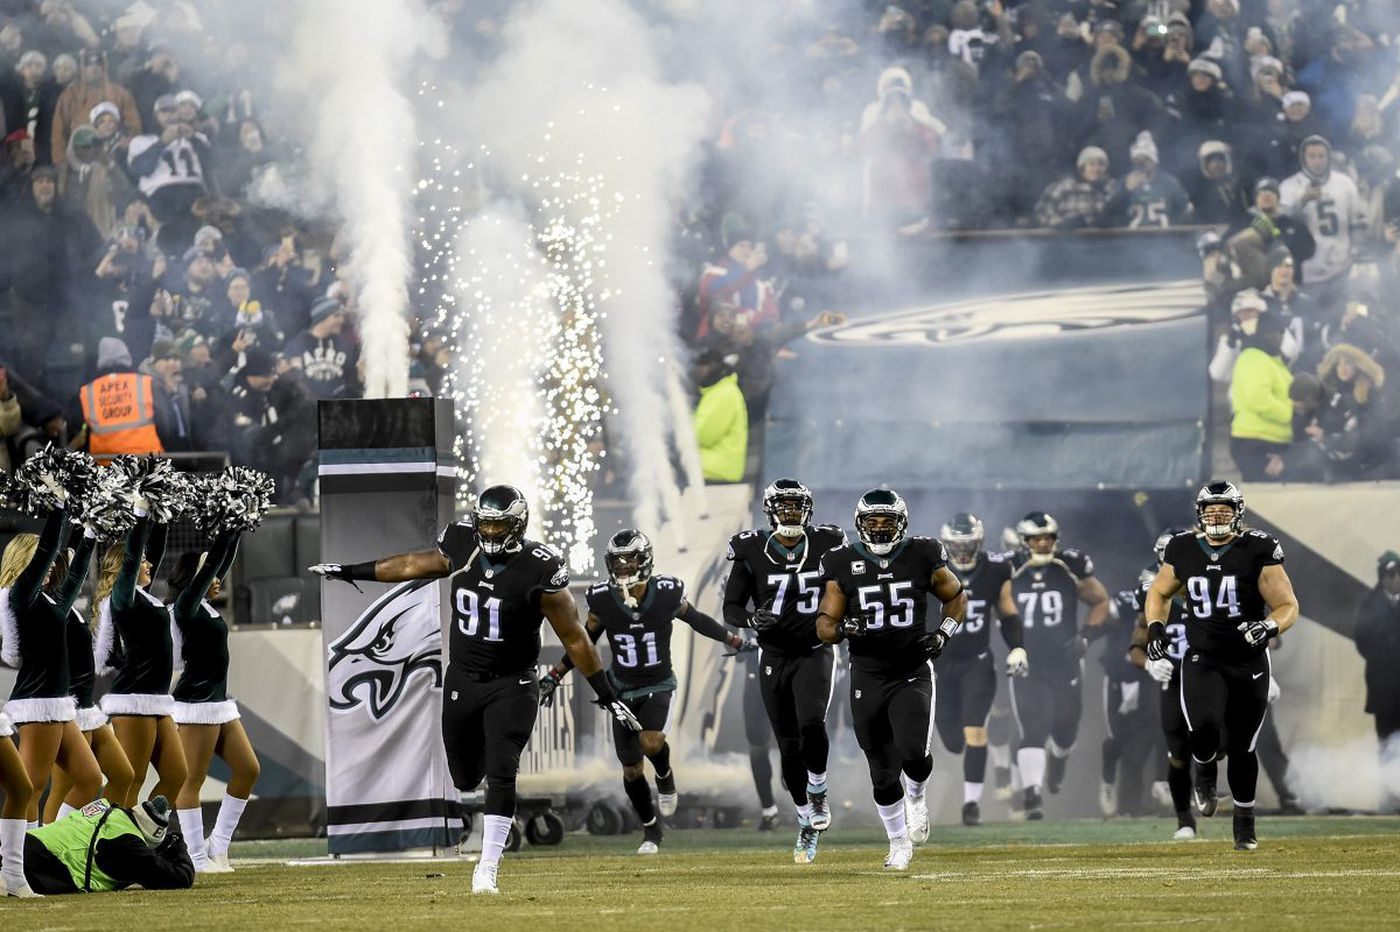 The Eagles defense is scorching. The Vikings have the NFL's No. 1 defense. Expect a slugfest Sunday